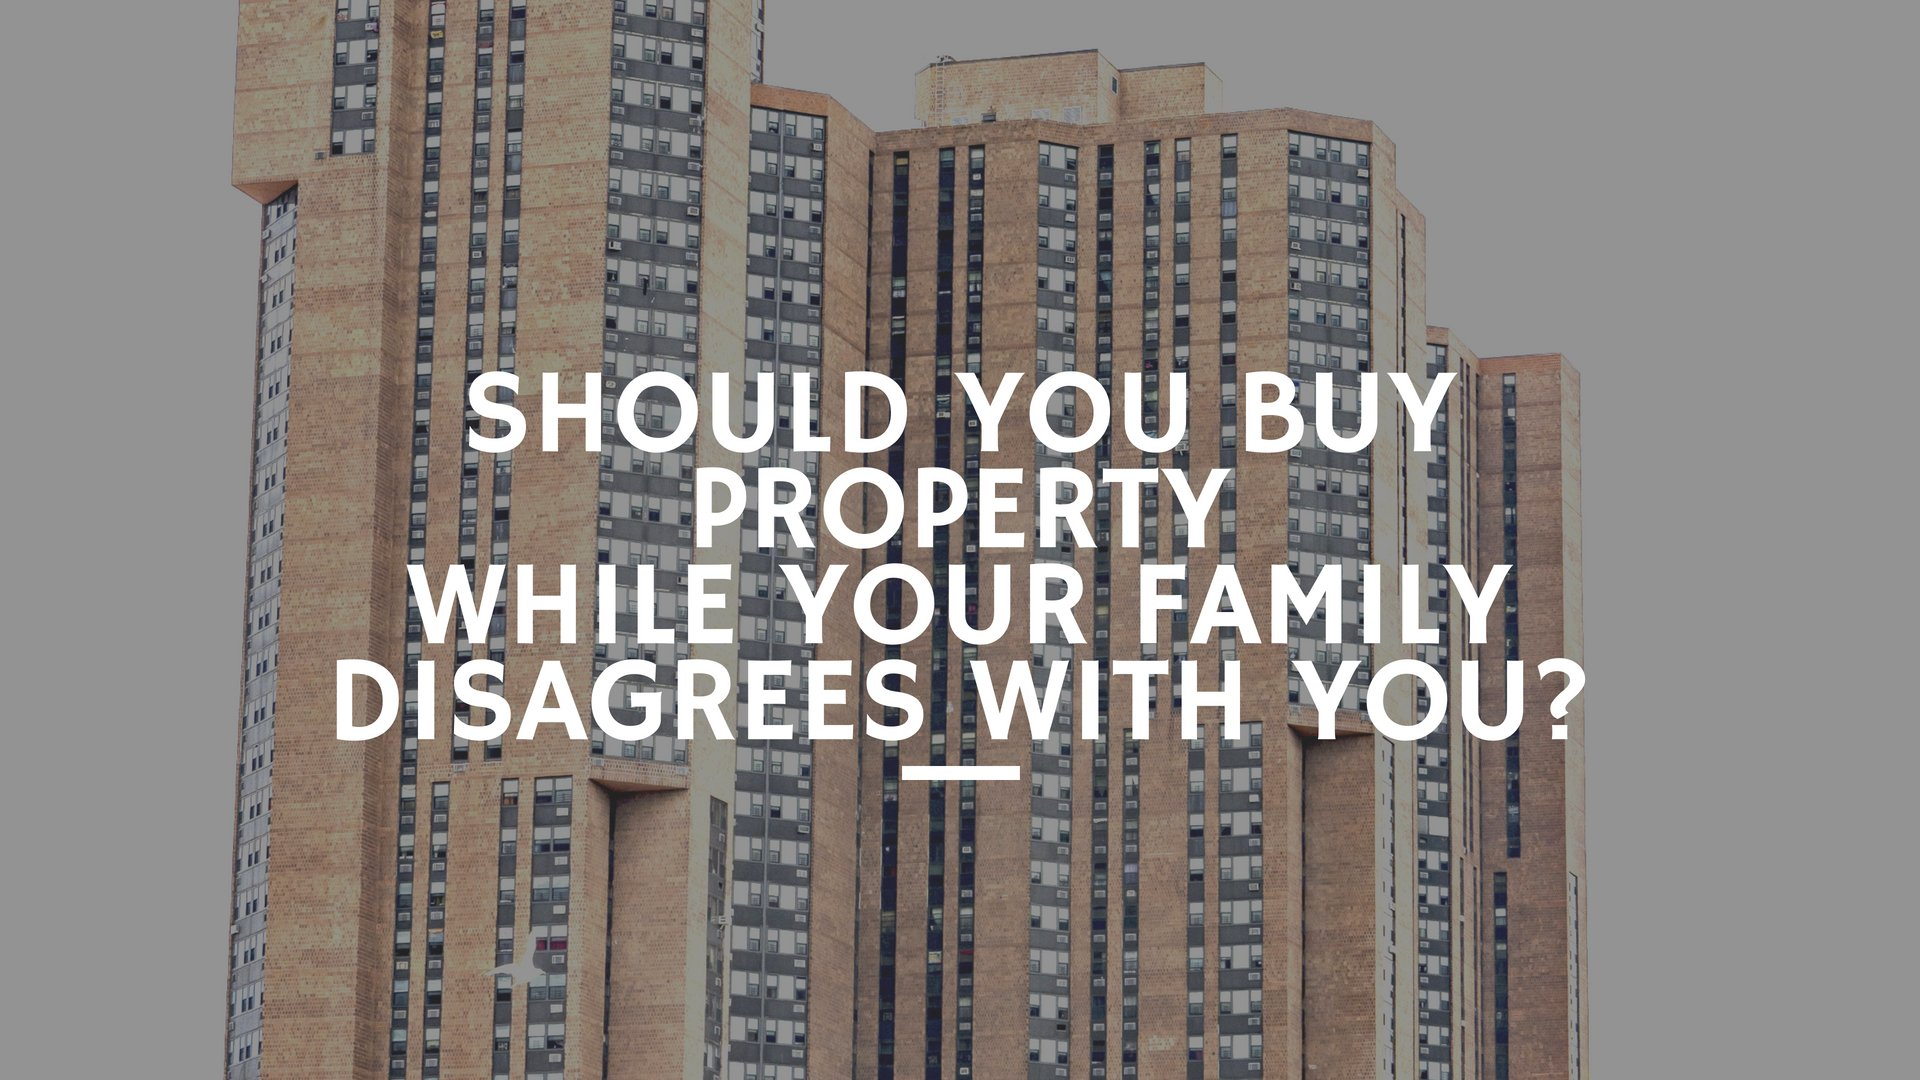 Should You Buy Property While Your Family Disagrees With You